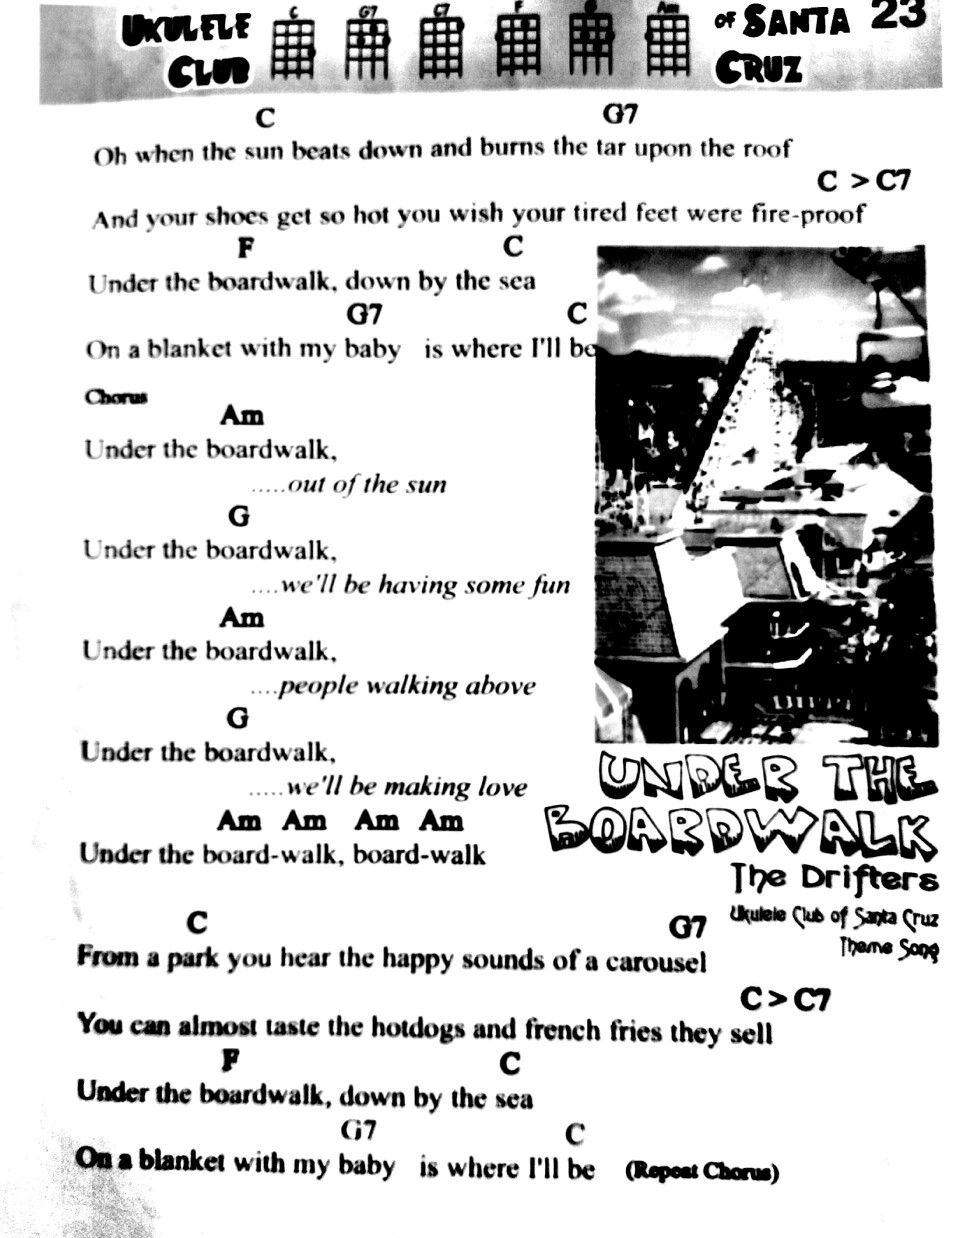 Guitar Chords For Under The Boardwalk Image Collections Basic